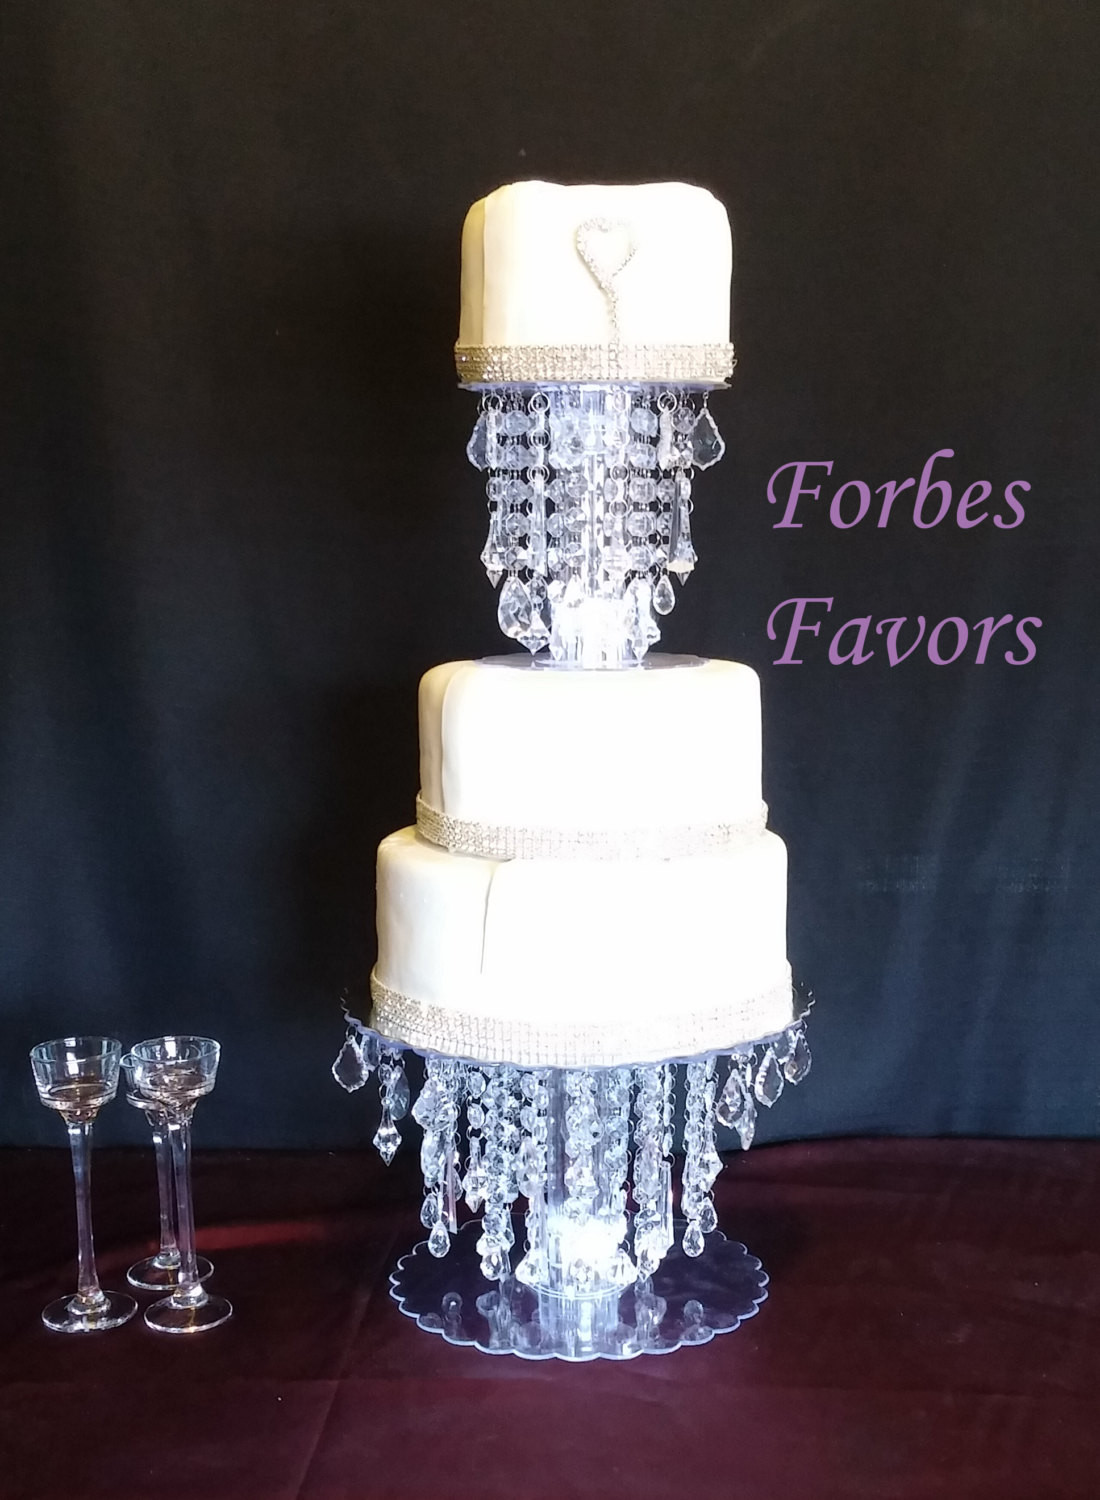 Crystal Cake Stands For Wedding Cakes  Glamorous Ice Crystal Cake Stand Wedding and Special Events